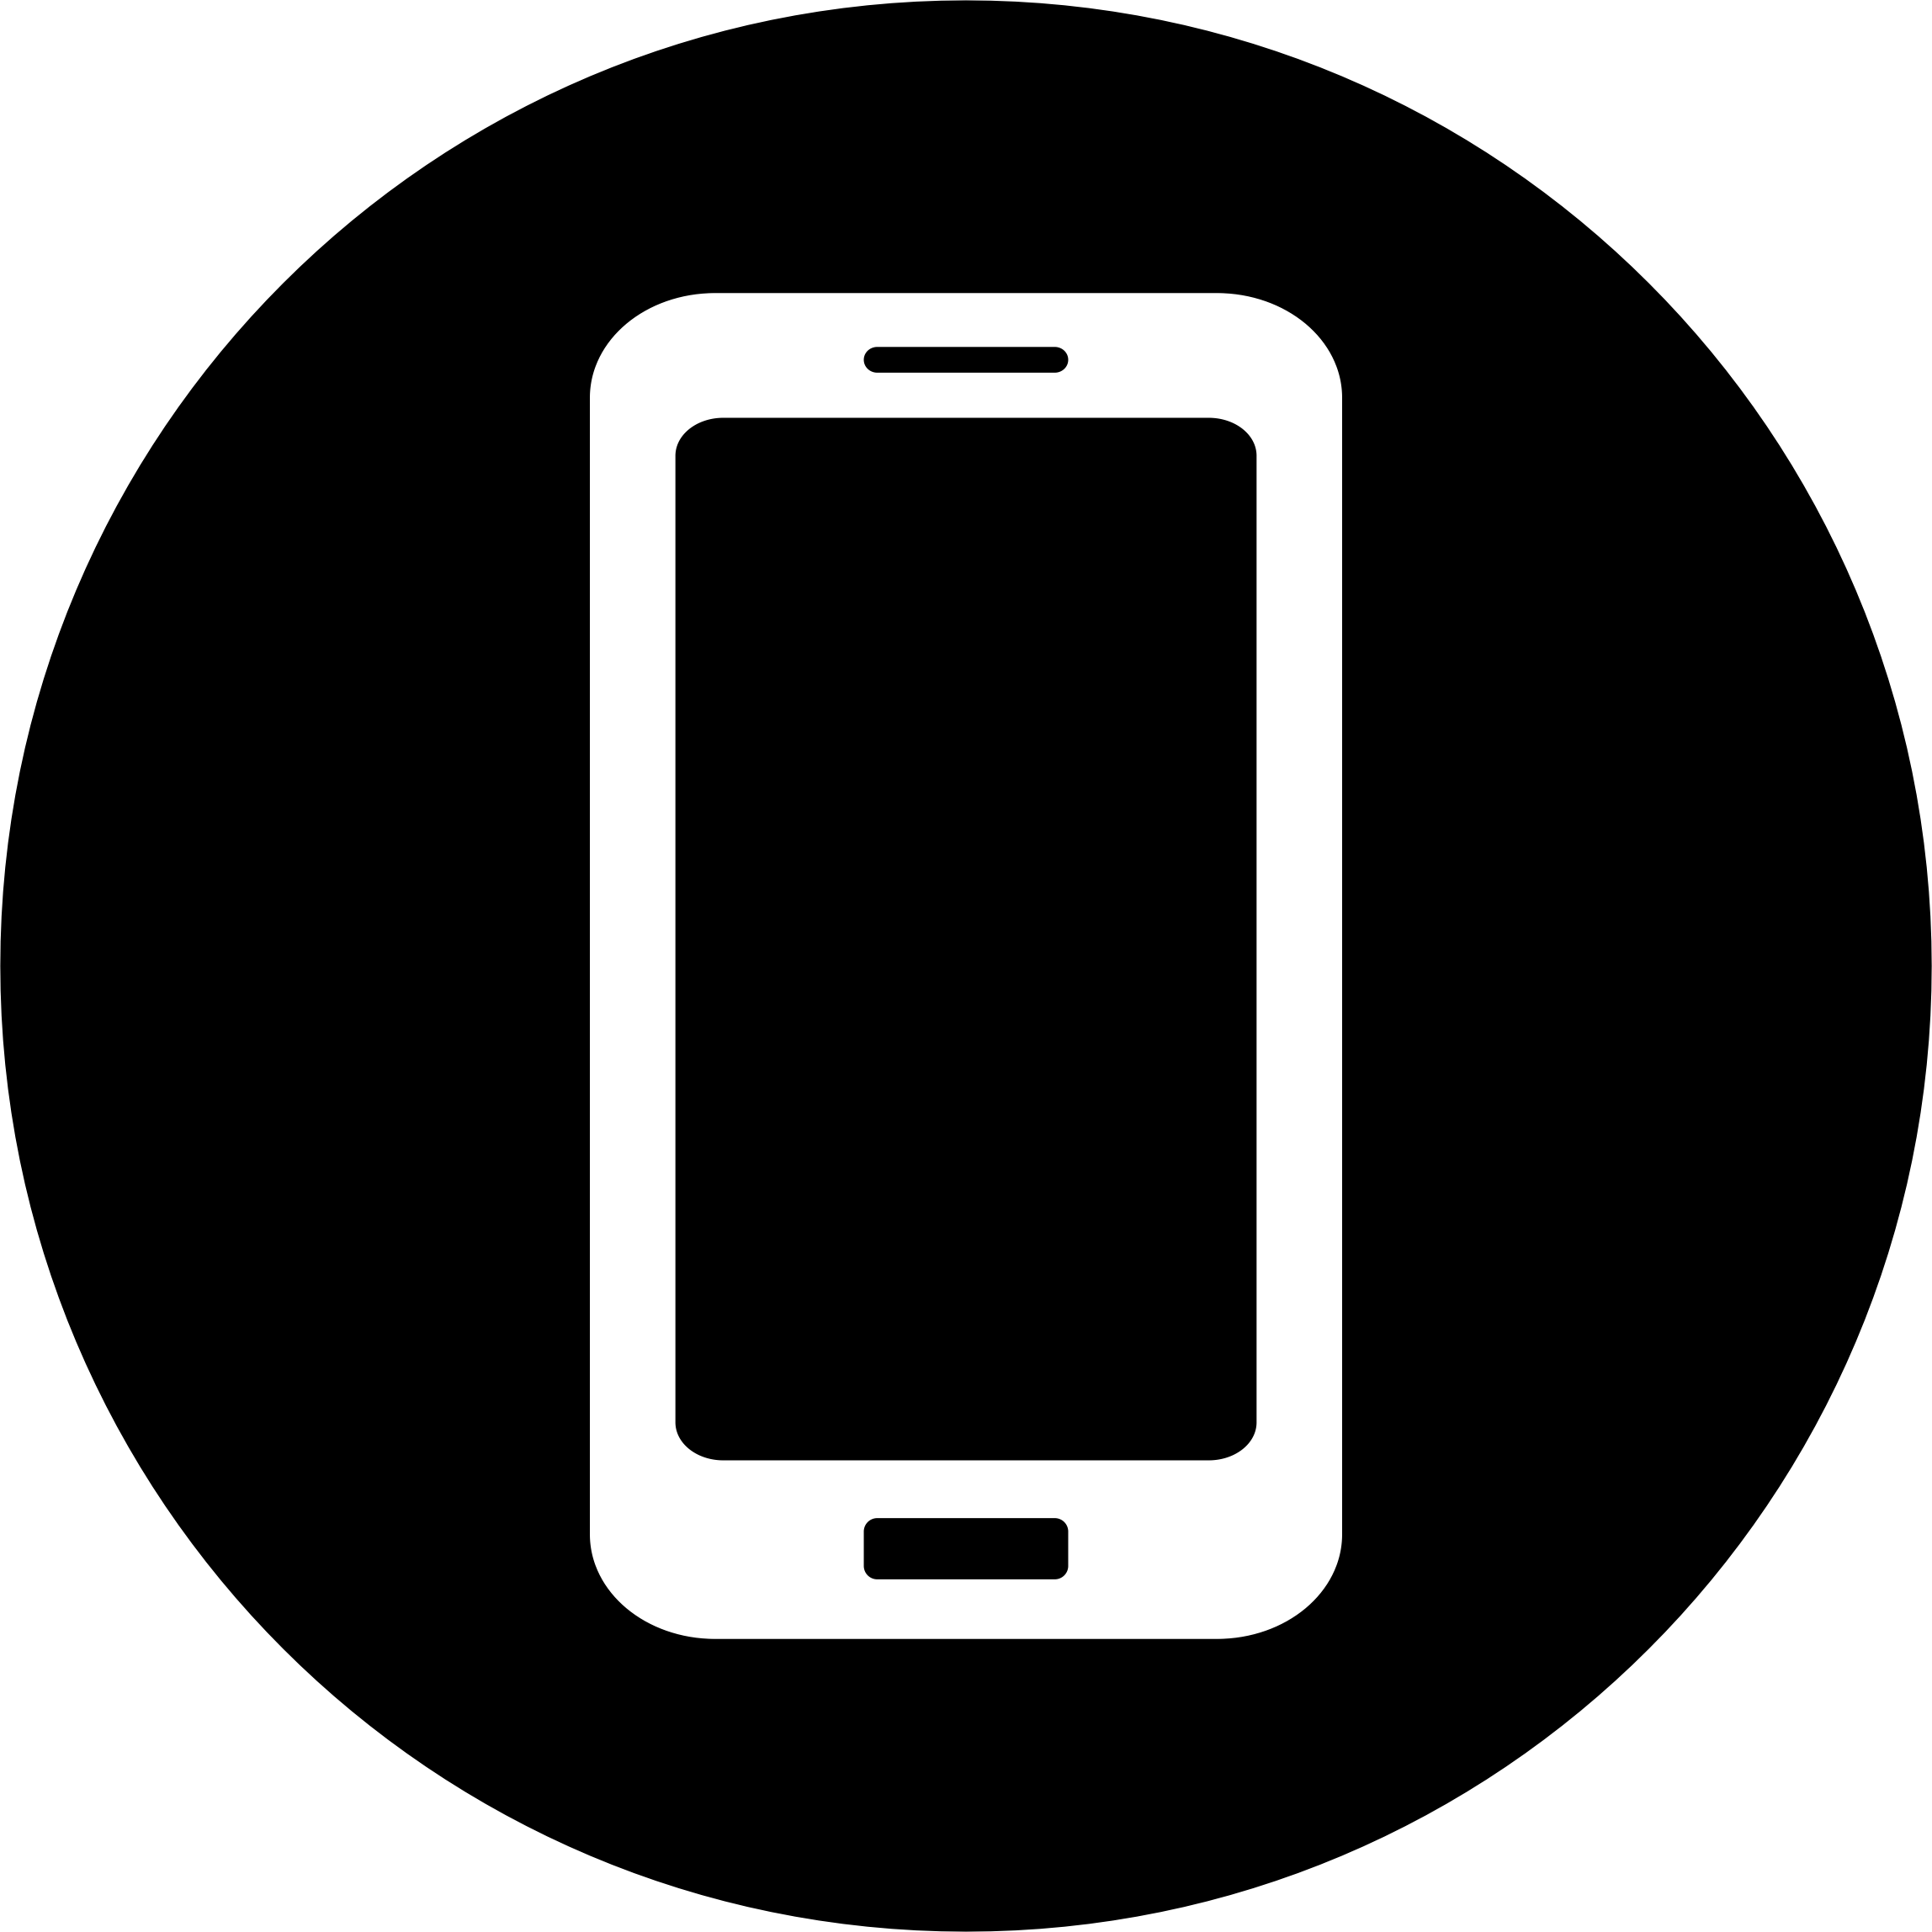 Cellphone icon white png. Mobile on black engosoft